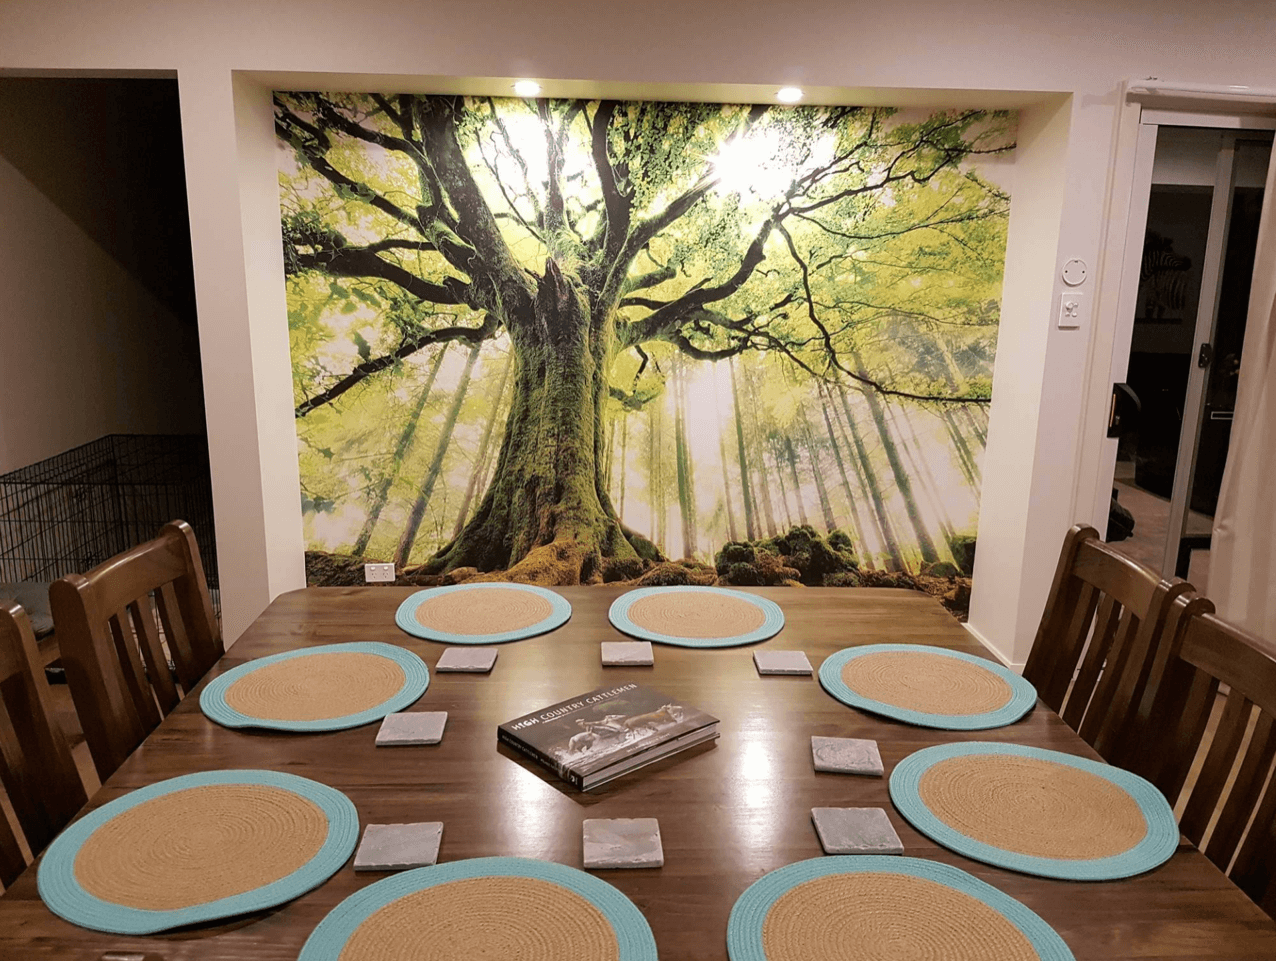 forest tree wallpaper in dining room